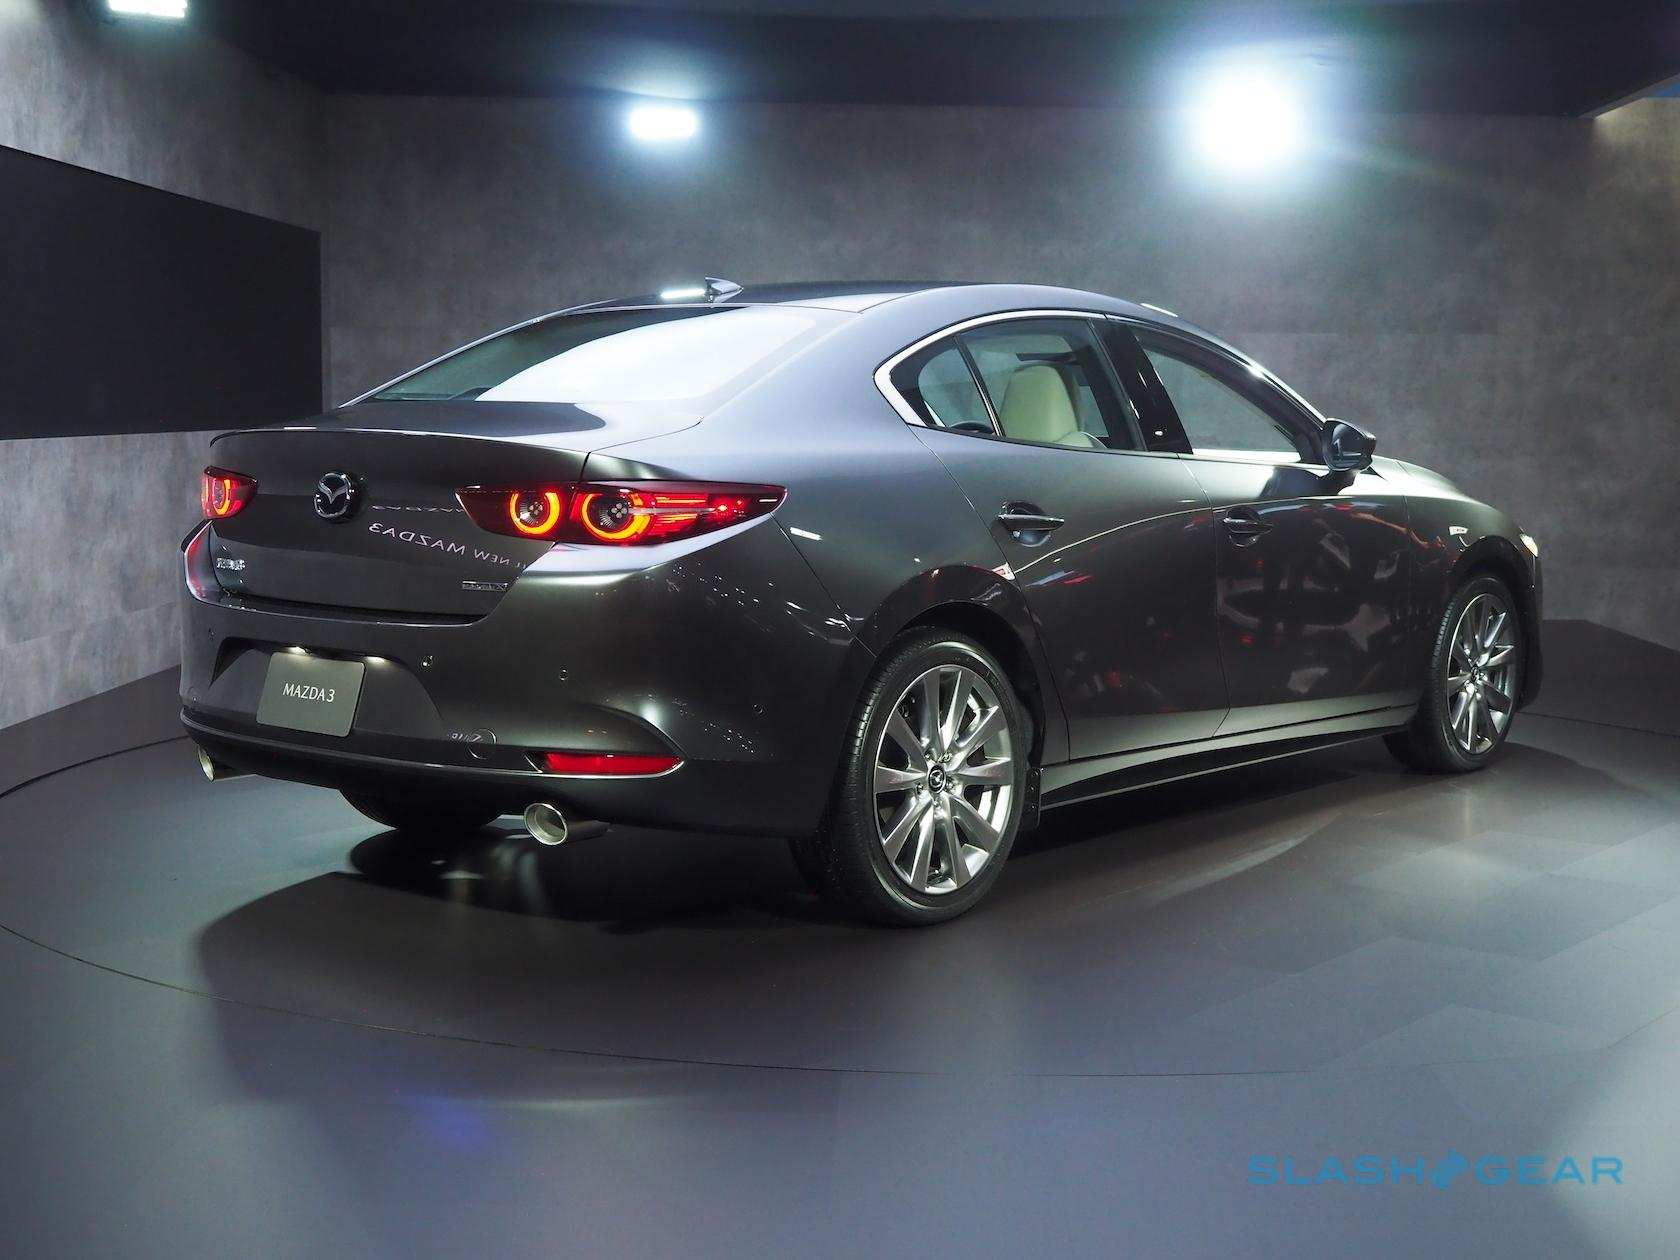 49 New 2020 Mazda 3 Fuel Economy Prices for 2020 Mazda 3 Fuel Economy